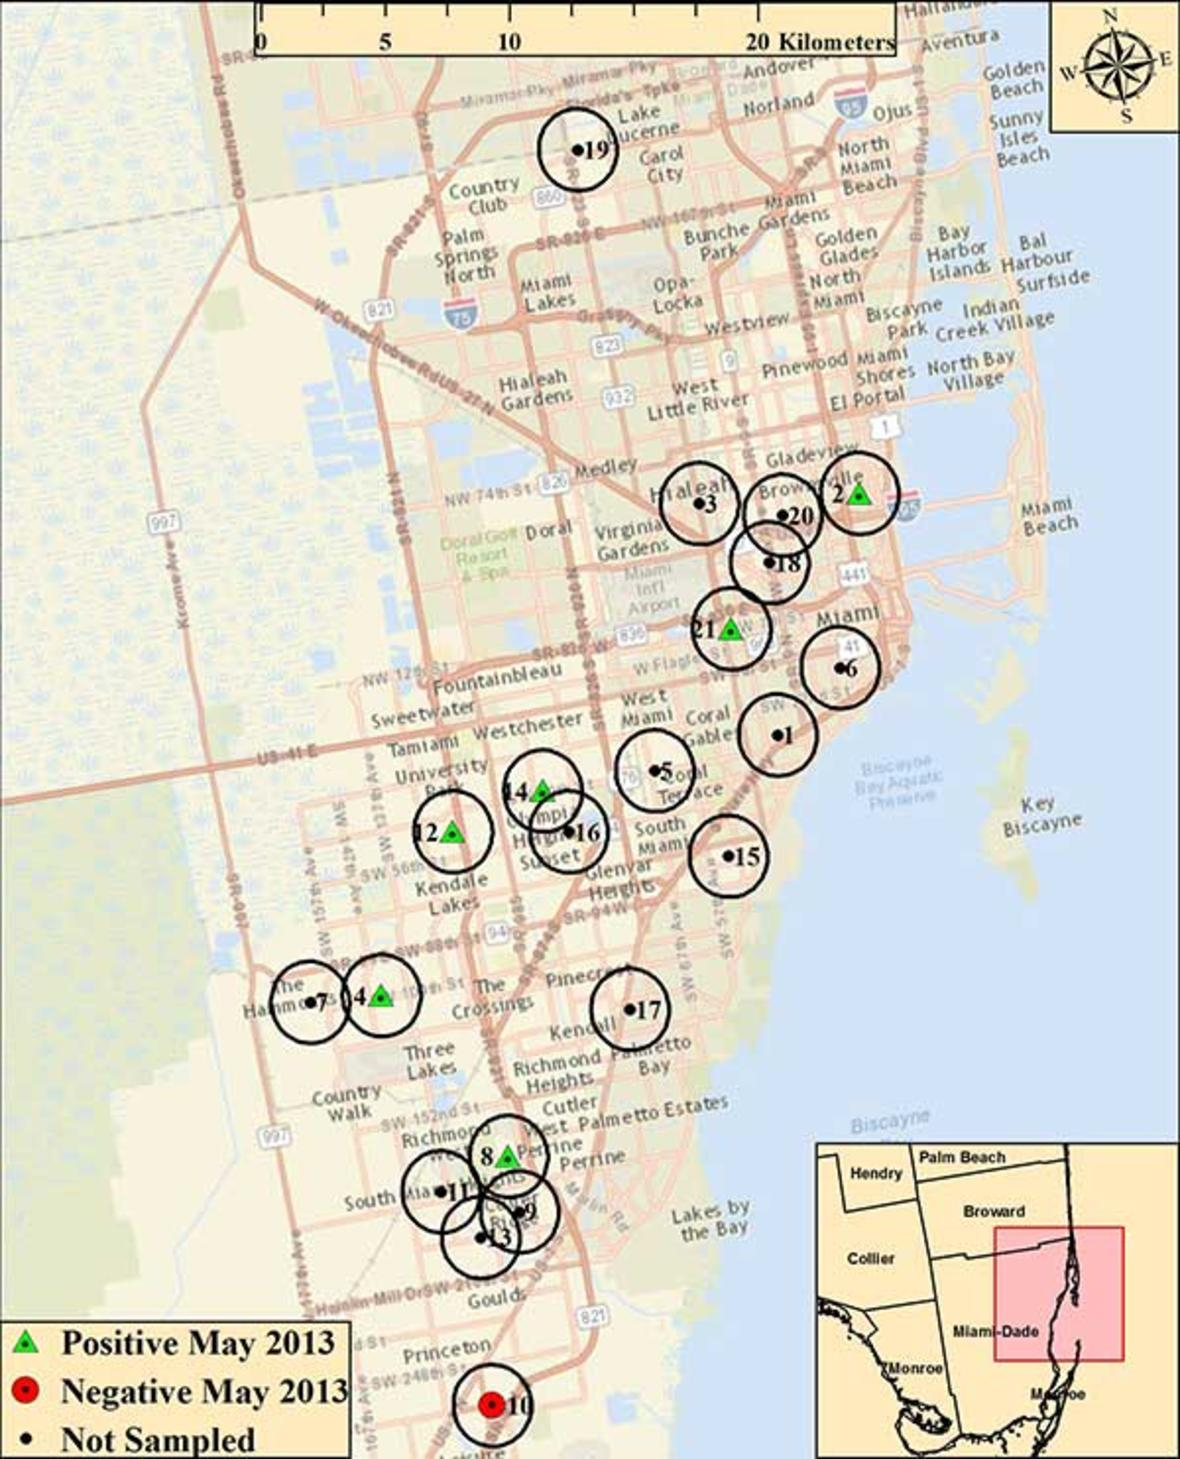 Miami Map Giant African Land Snails Were Collected In May 2013. - Giant Florida Map